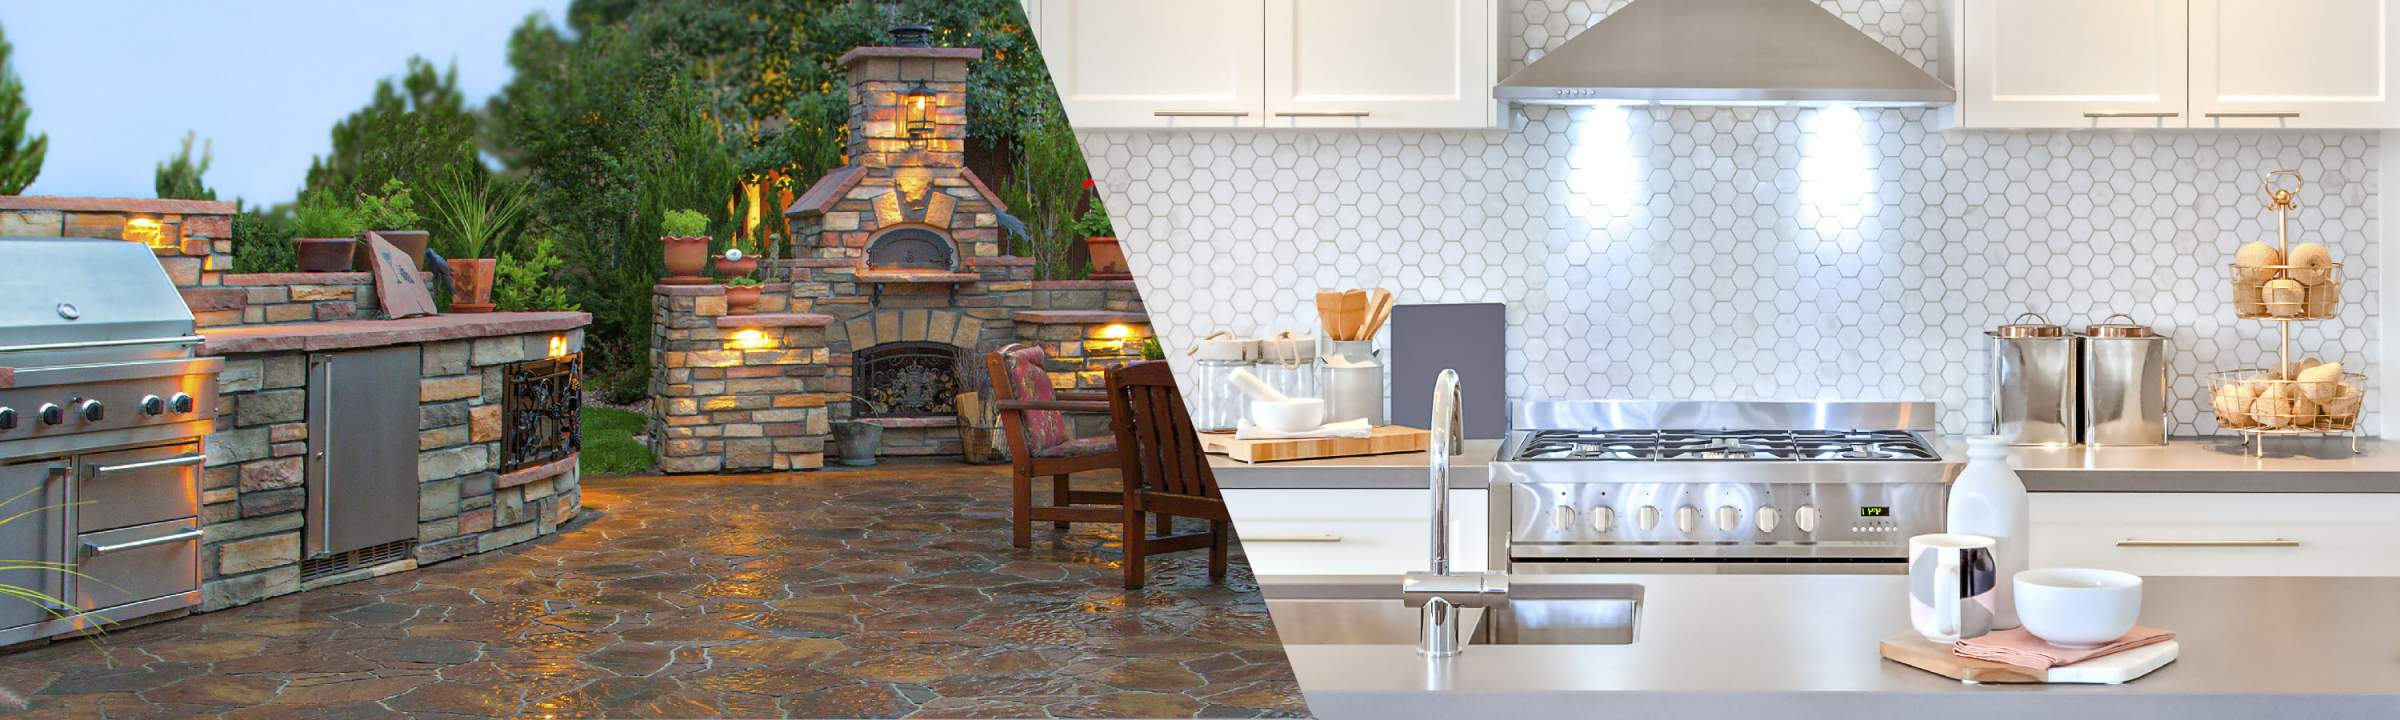 Indoor & Outdoor Remodeling Countertops, Patios, Floors, Driveways and More...